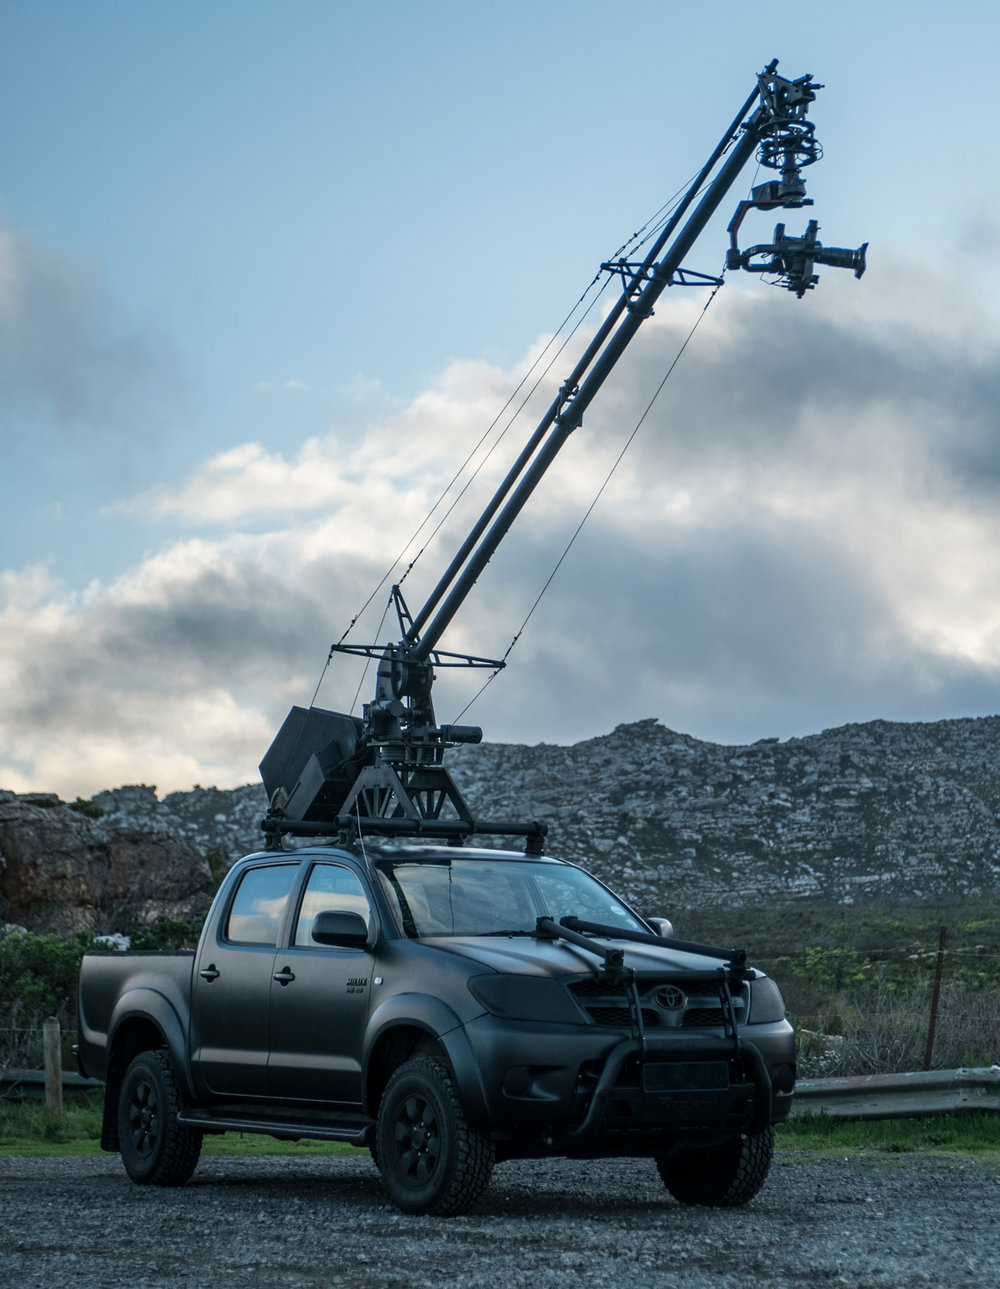 Vehicle specs - Toyota Hilux 4.0L V6 Double Cab 4x40-100km/h: 11s loaded340Nm torqueAutomatic transmissionWeight: 2790kgTrained Precision DriverSeating for 6PAX including driver and arm operator, 5PAX in cab and 1 PAX in exterior back of vehicle